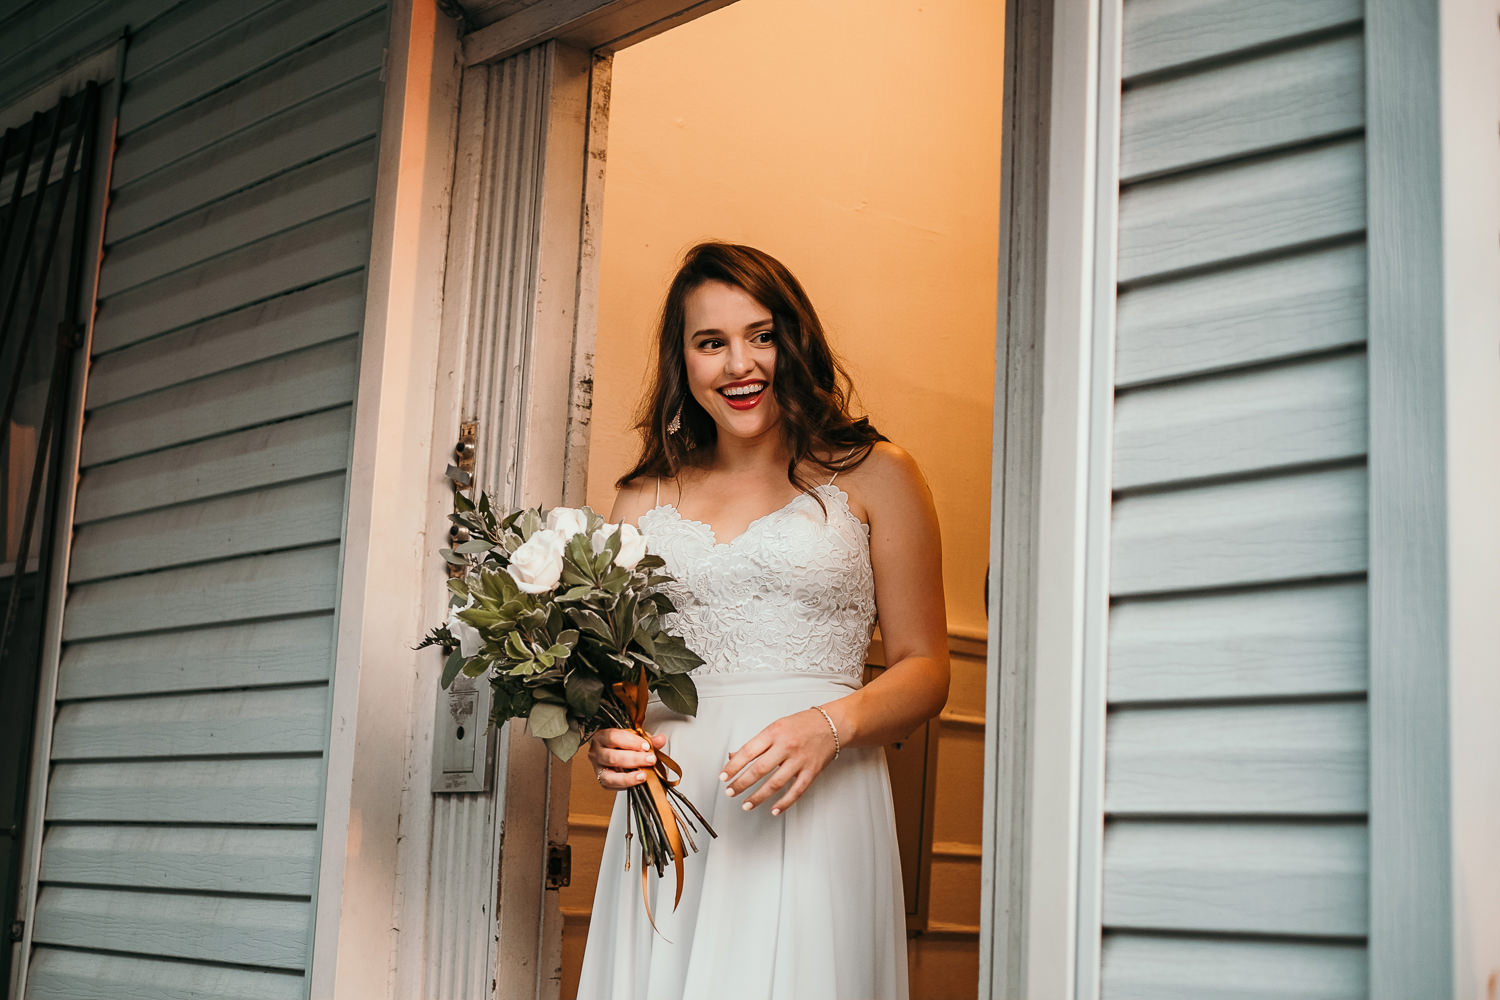 bride surprised face as she walks out apartment door